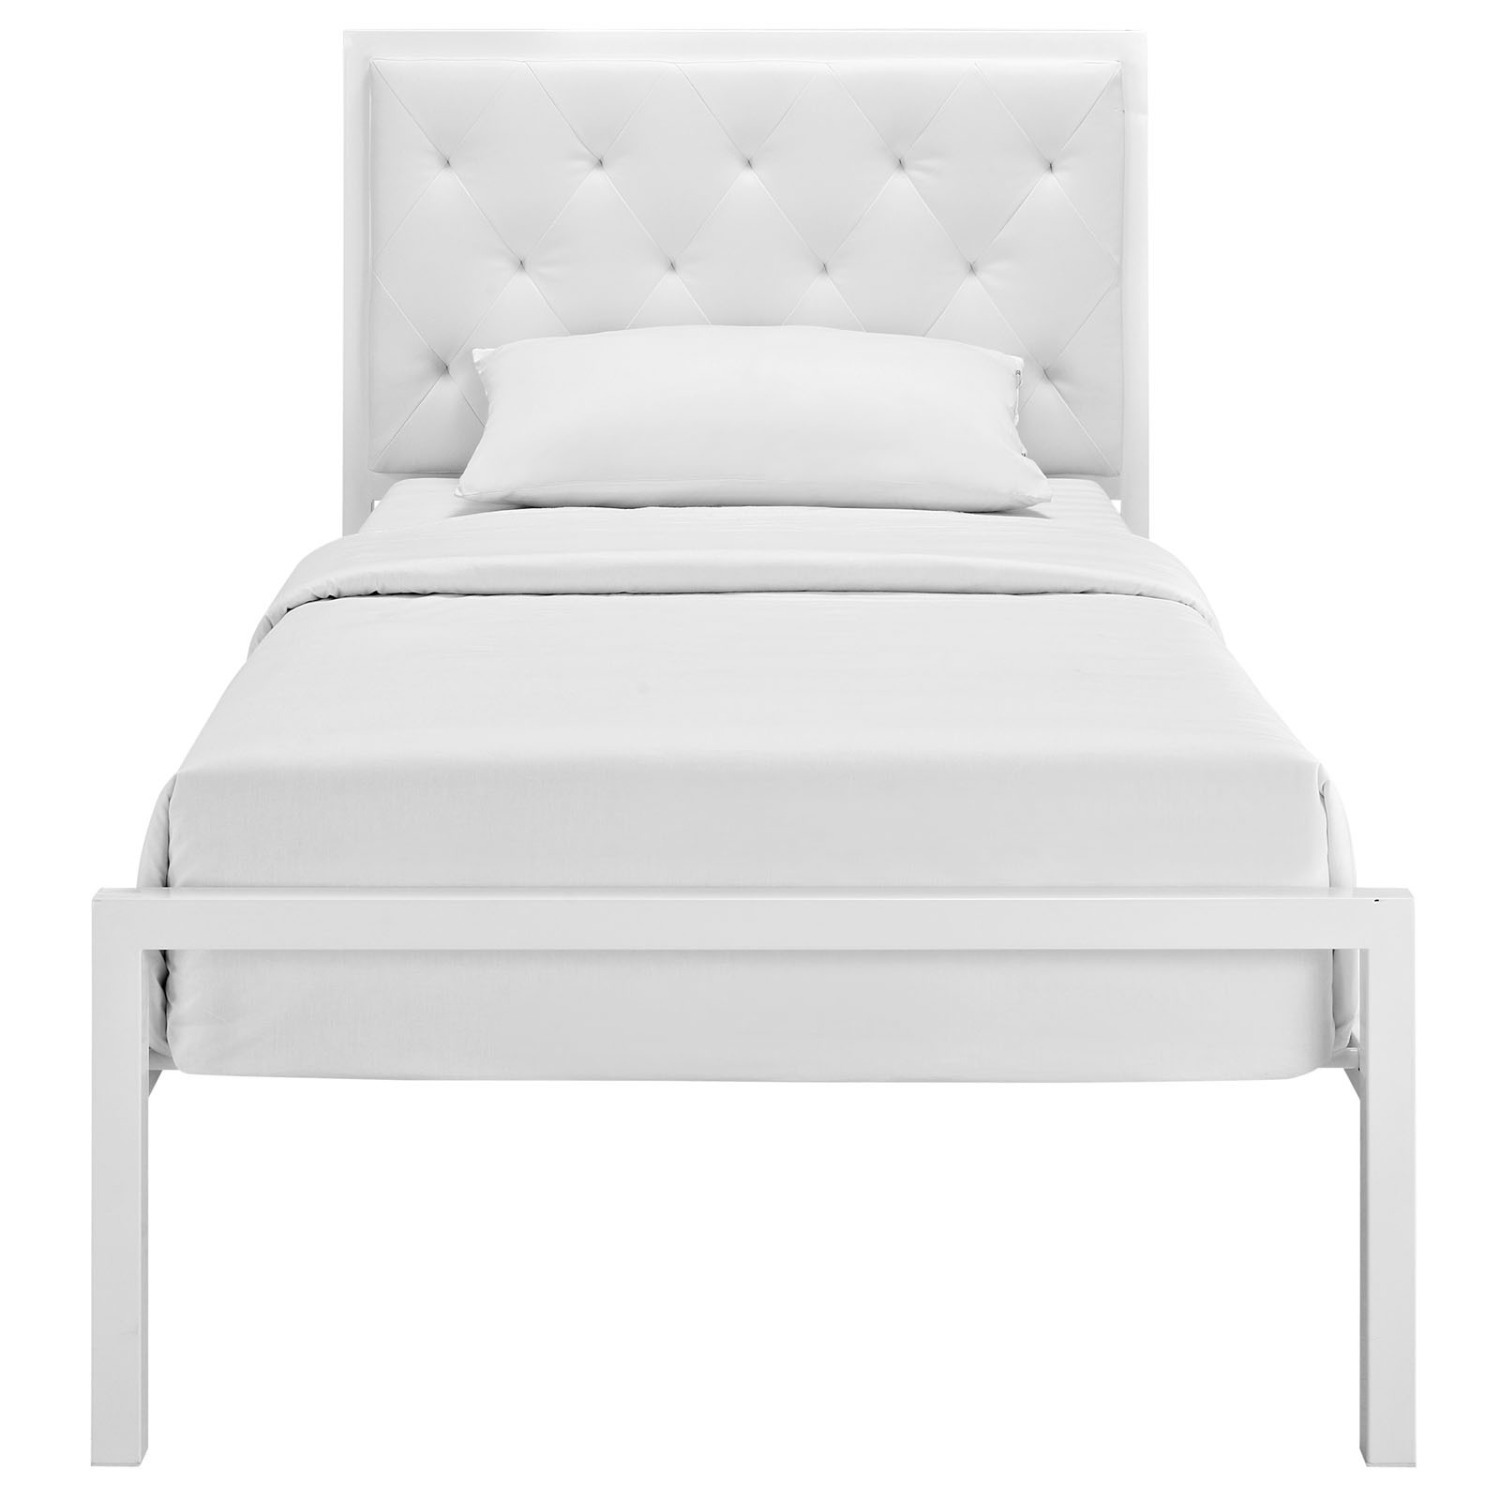 Twin Bed In White Steel Frame & Tufted Headboard - image-2